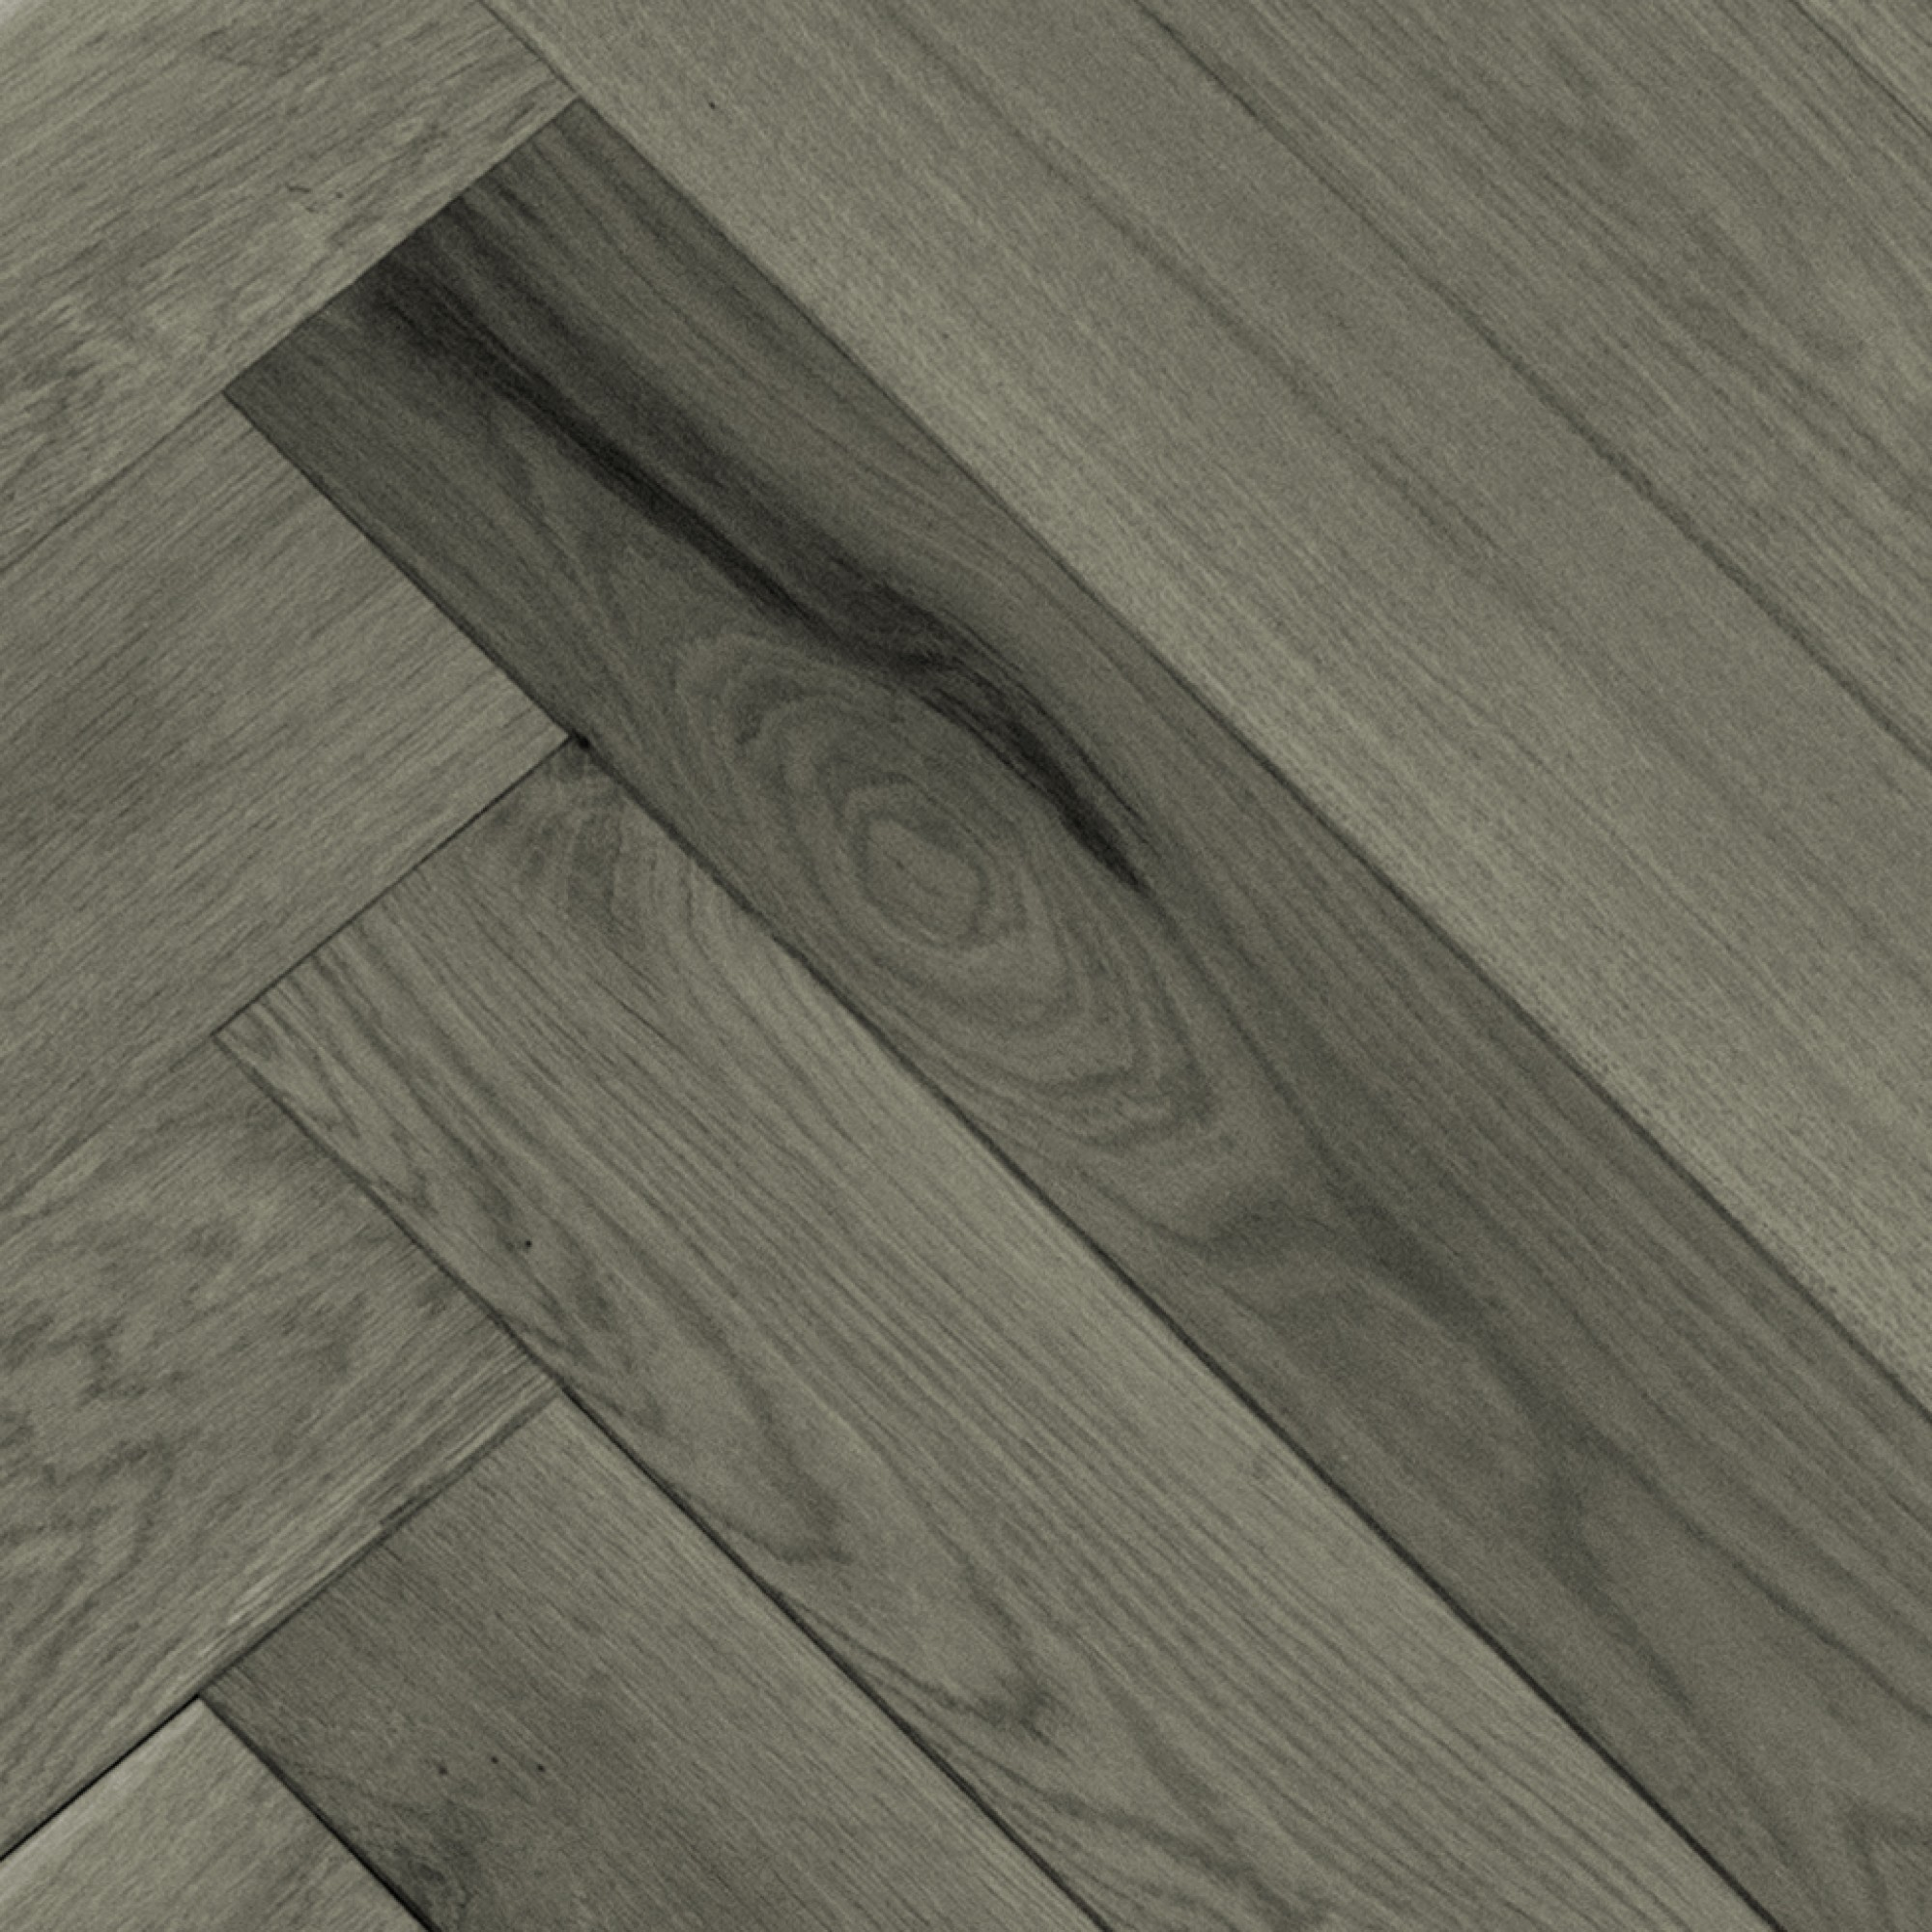 nautilus eng hand vintage back flooring big oak hardwood scraped herringbone white floor